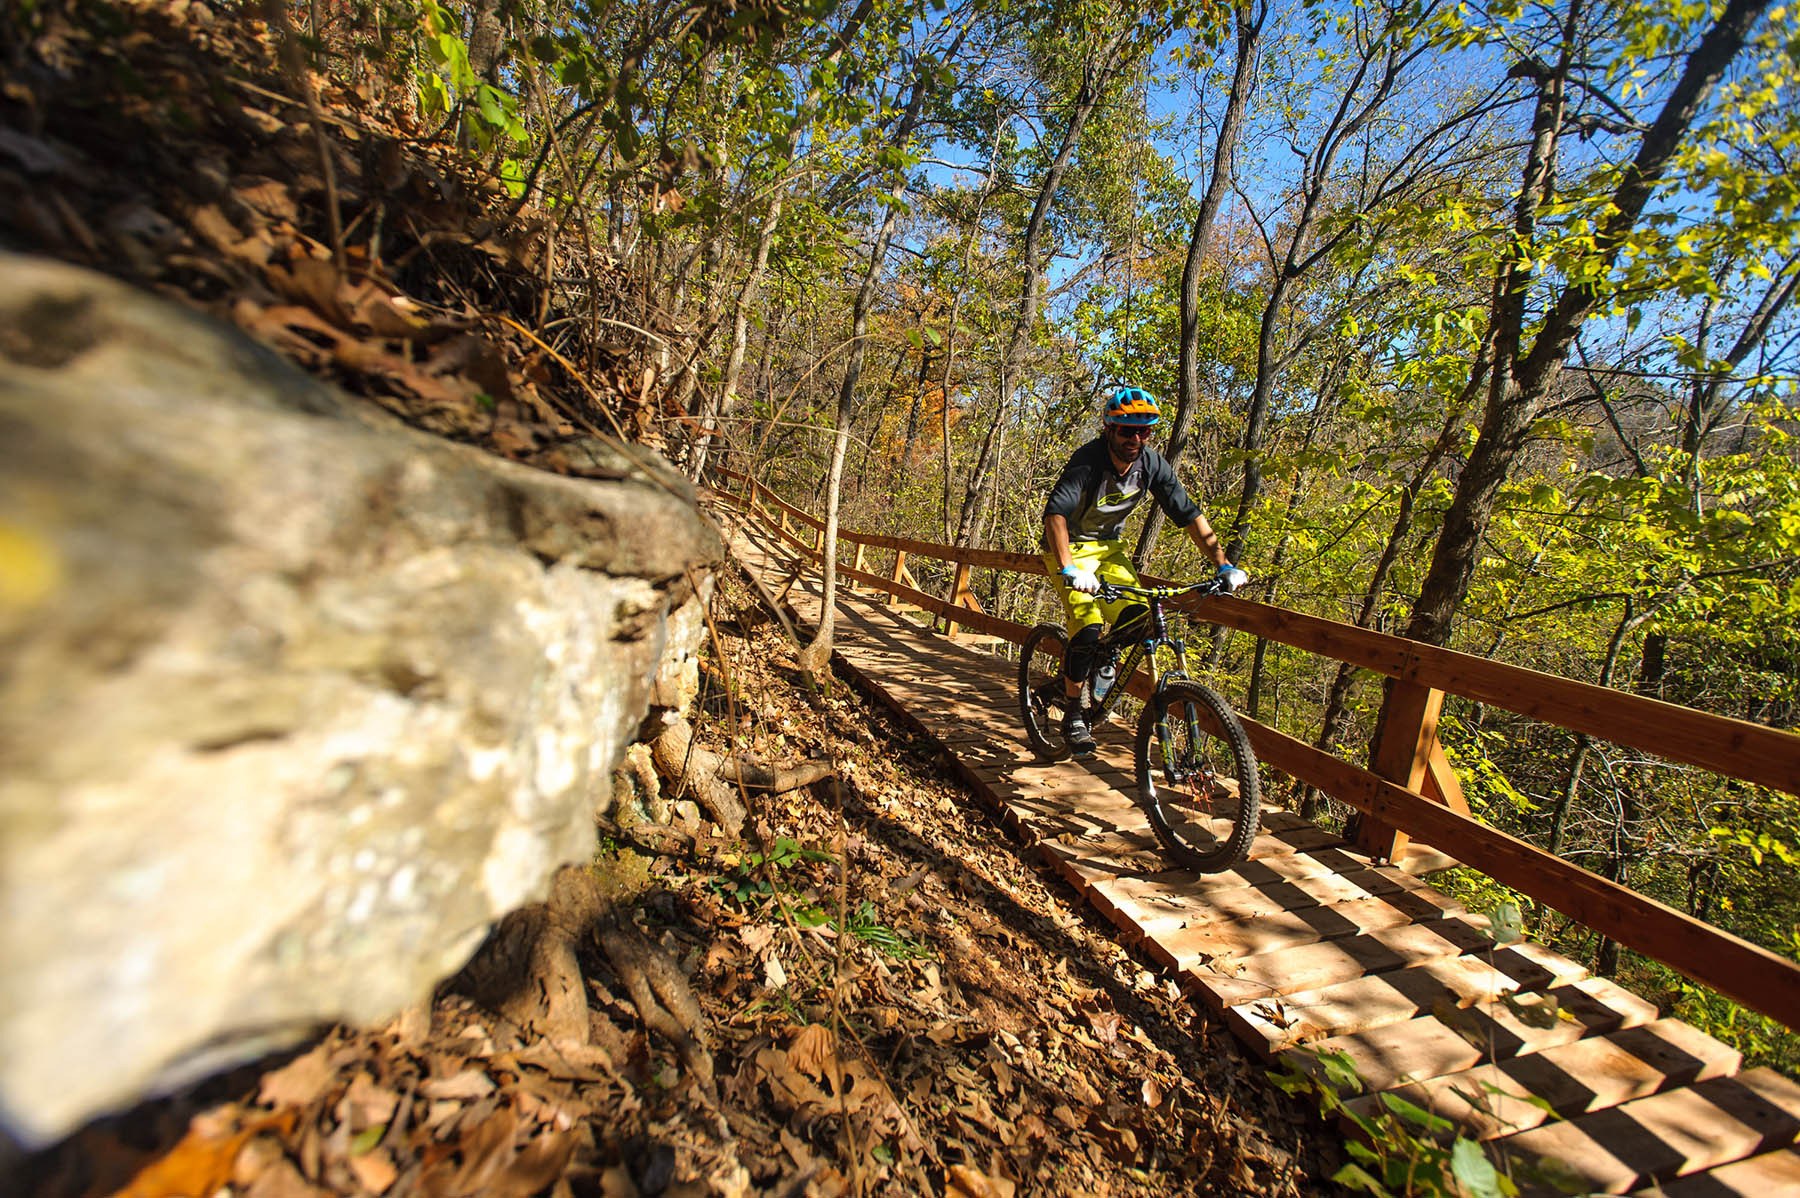 IMBA partnering with Outerbike to celebrate 30th anniversary